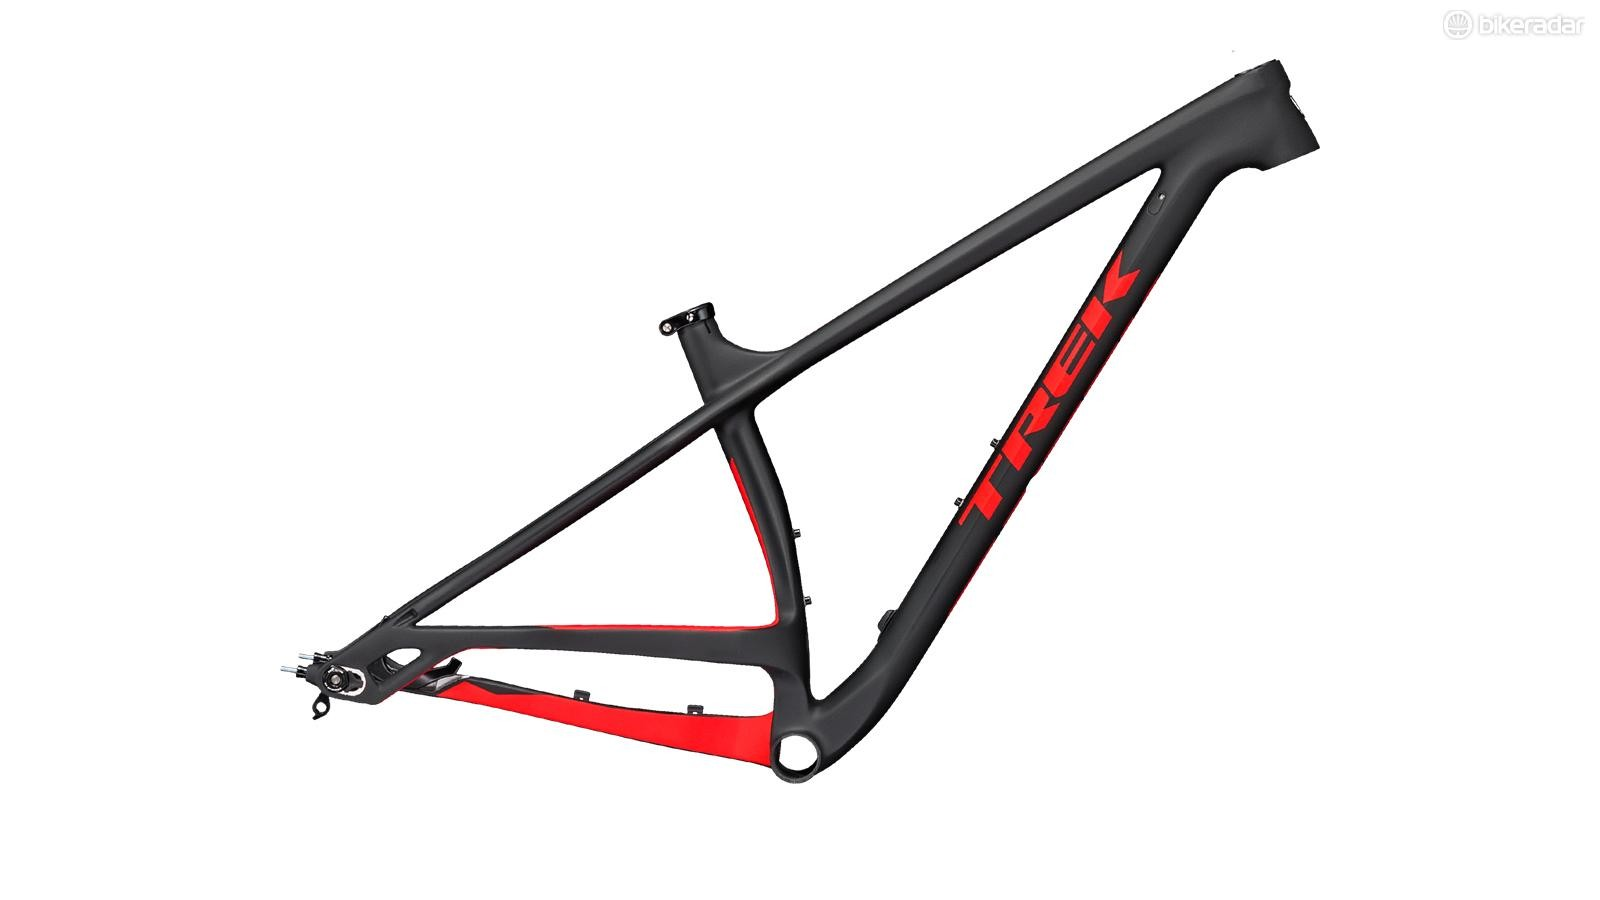 The Stache Carbon has a lower bottom bracket and longer reach than the alloy versions